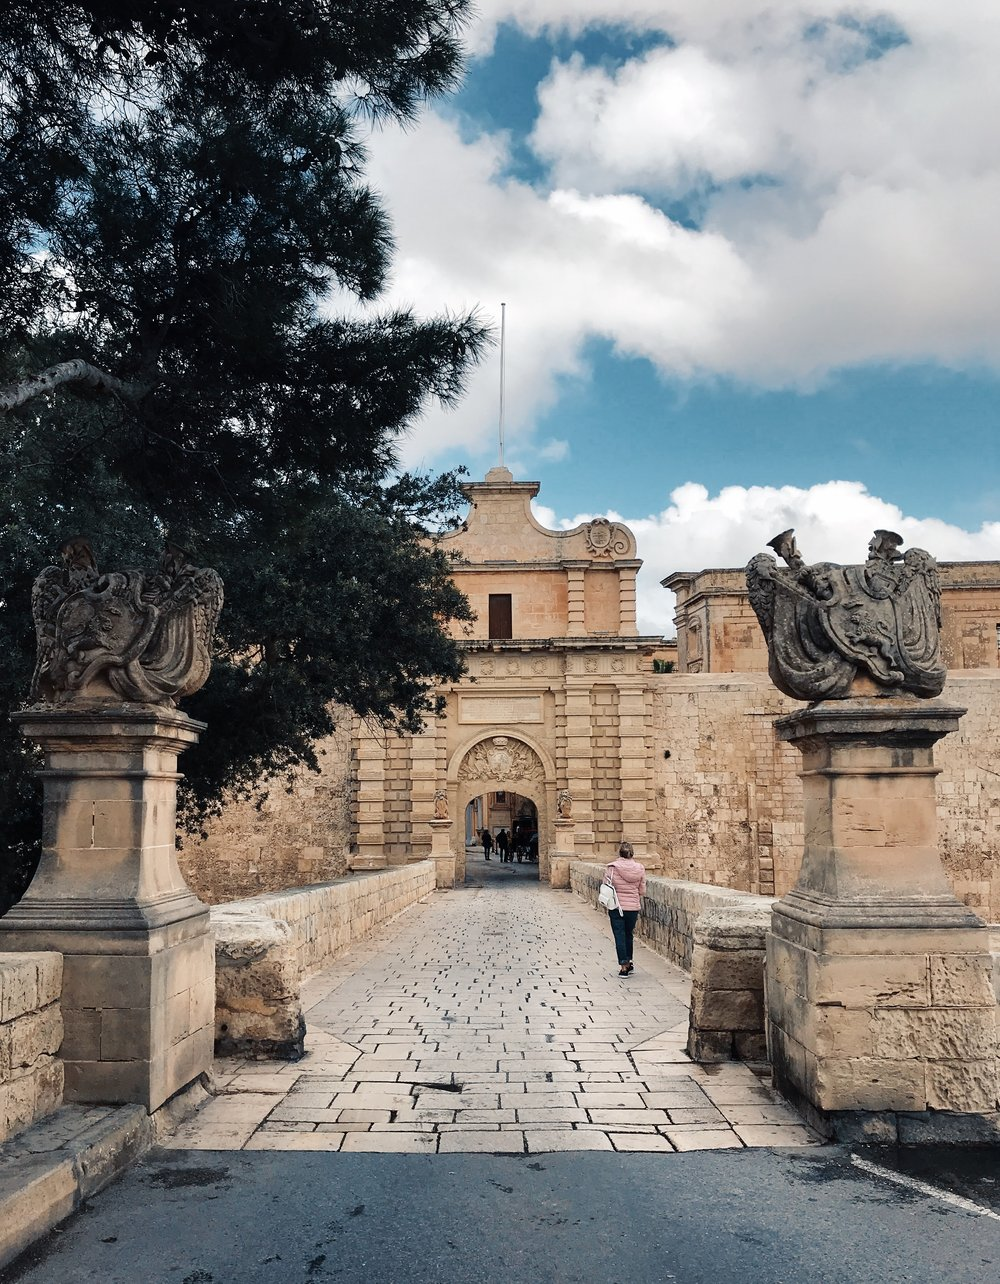 1. Mdina  - A hilltop medieval walled city featured in Game of Thrones and packed with the historic mansions of Maltese nobilityWe had the entire place to ourselves and toured the city in less than 2 hours. Recognise this gate from 'Game of Thrones'?